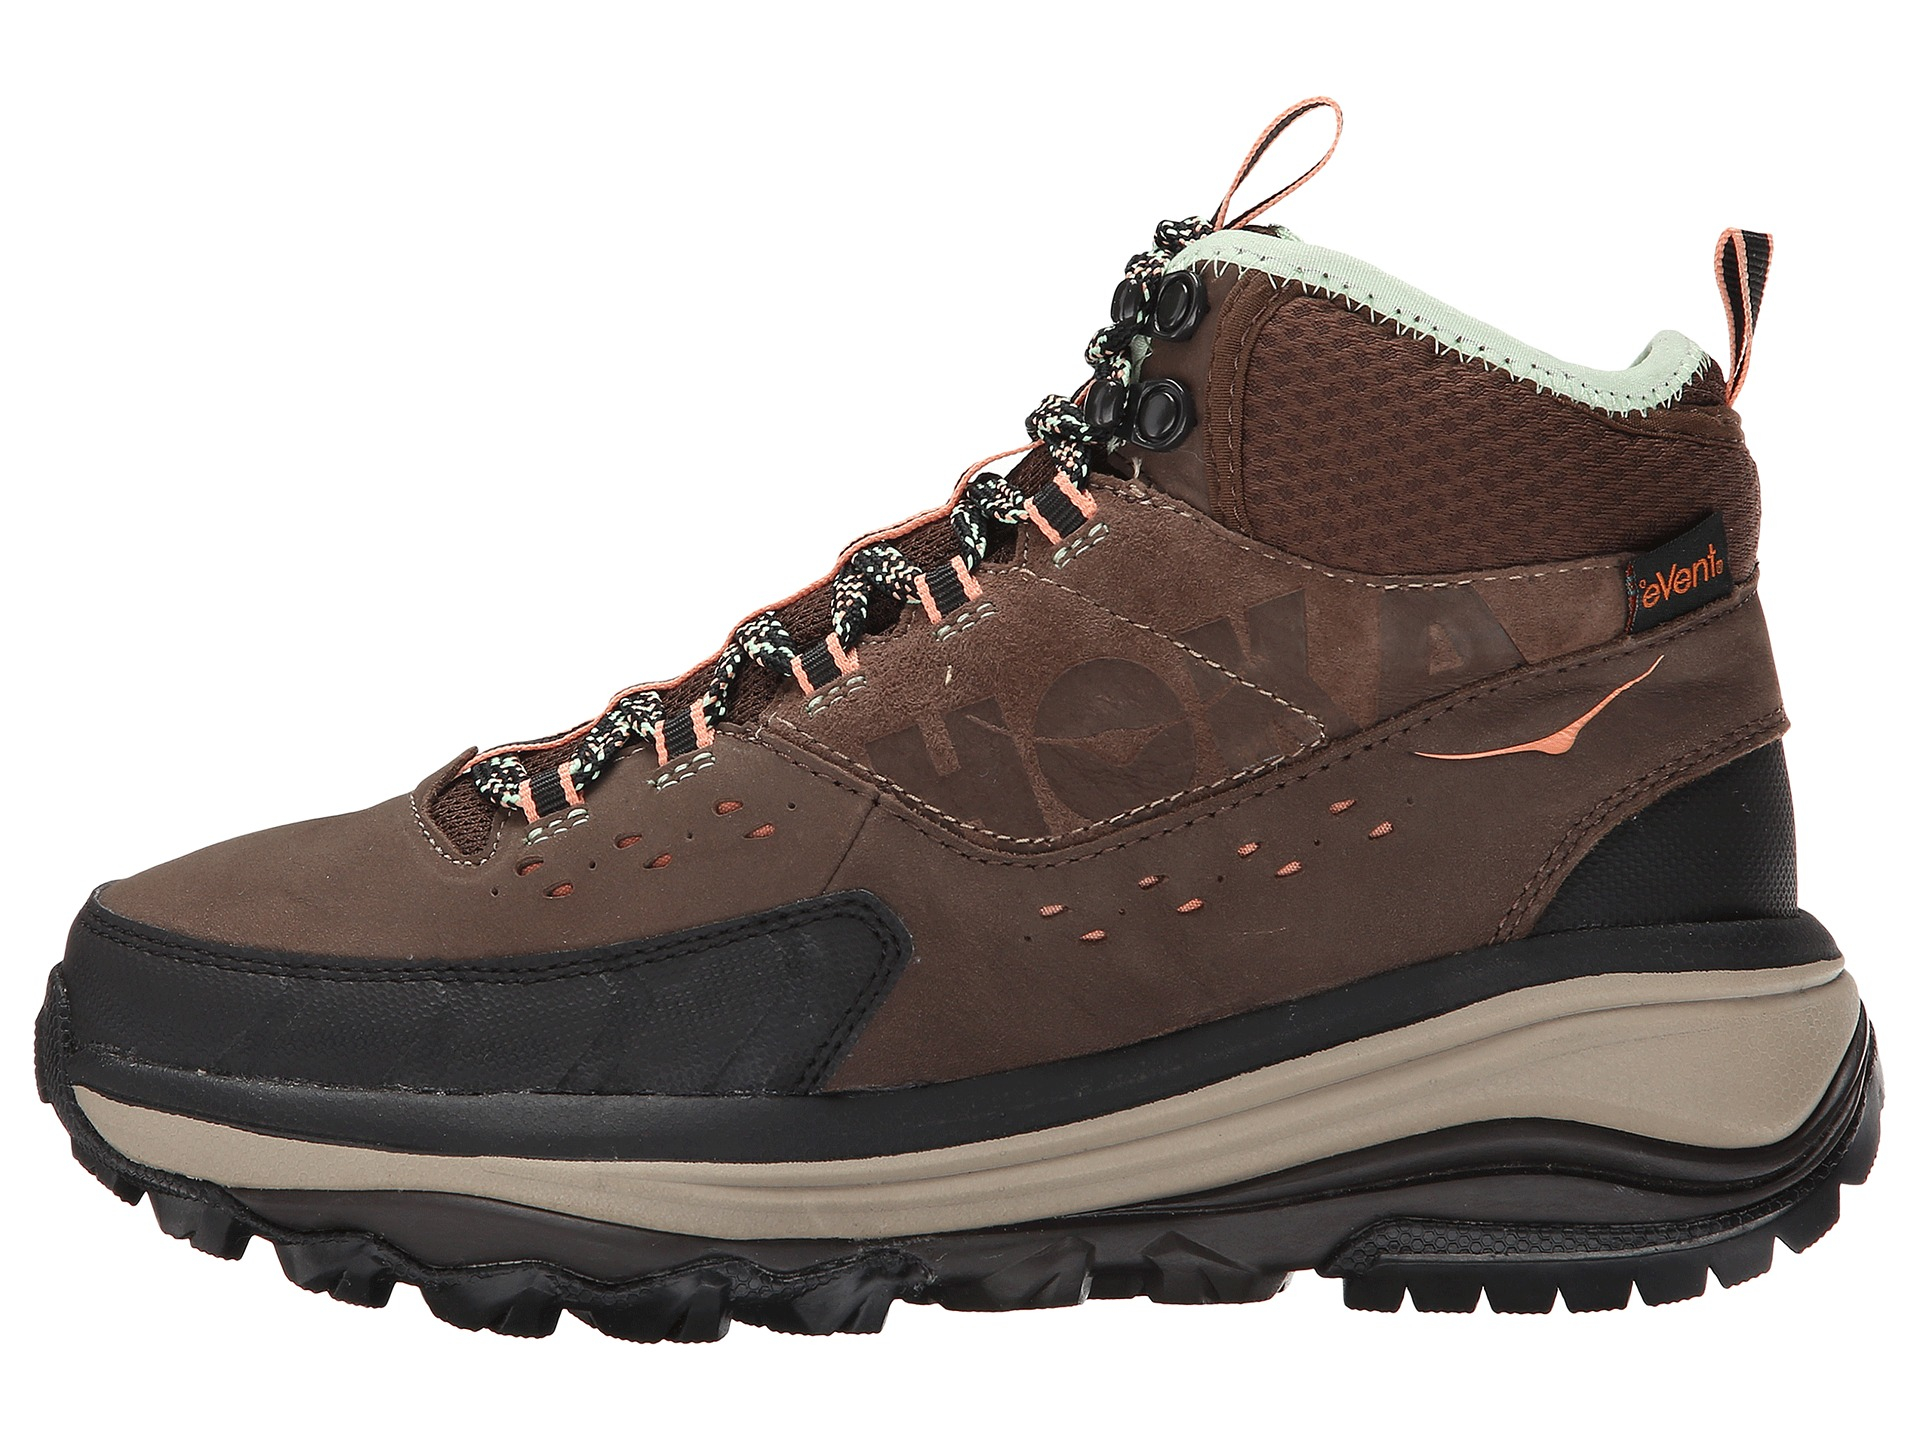 Hoka One One Tor Summit Mid Wp In Brown Brown Patina